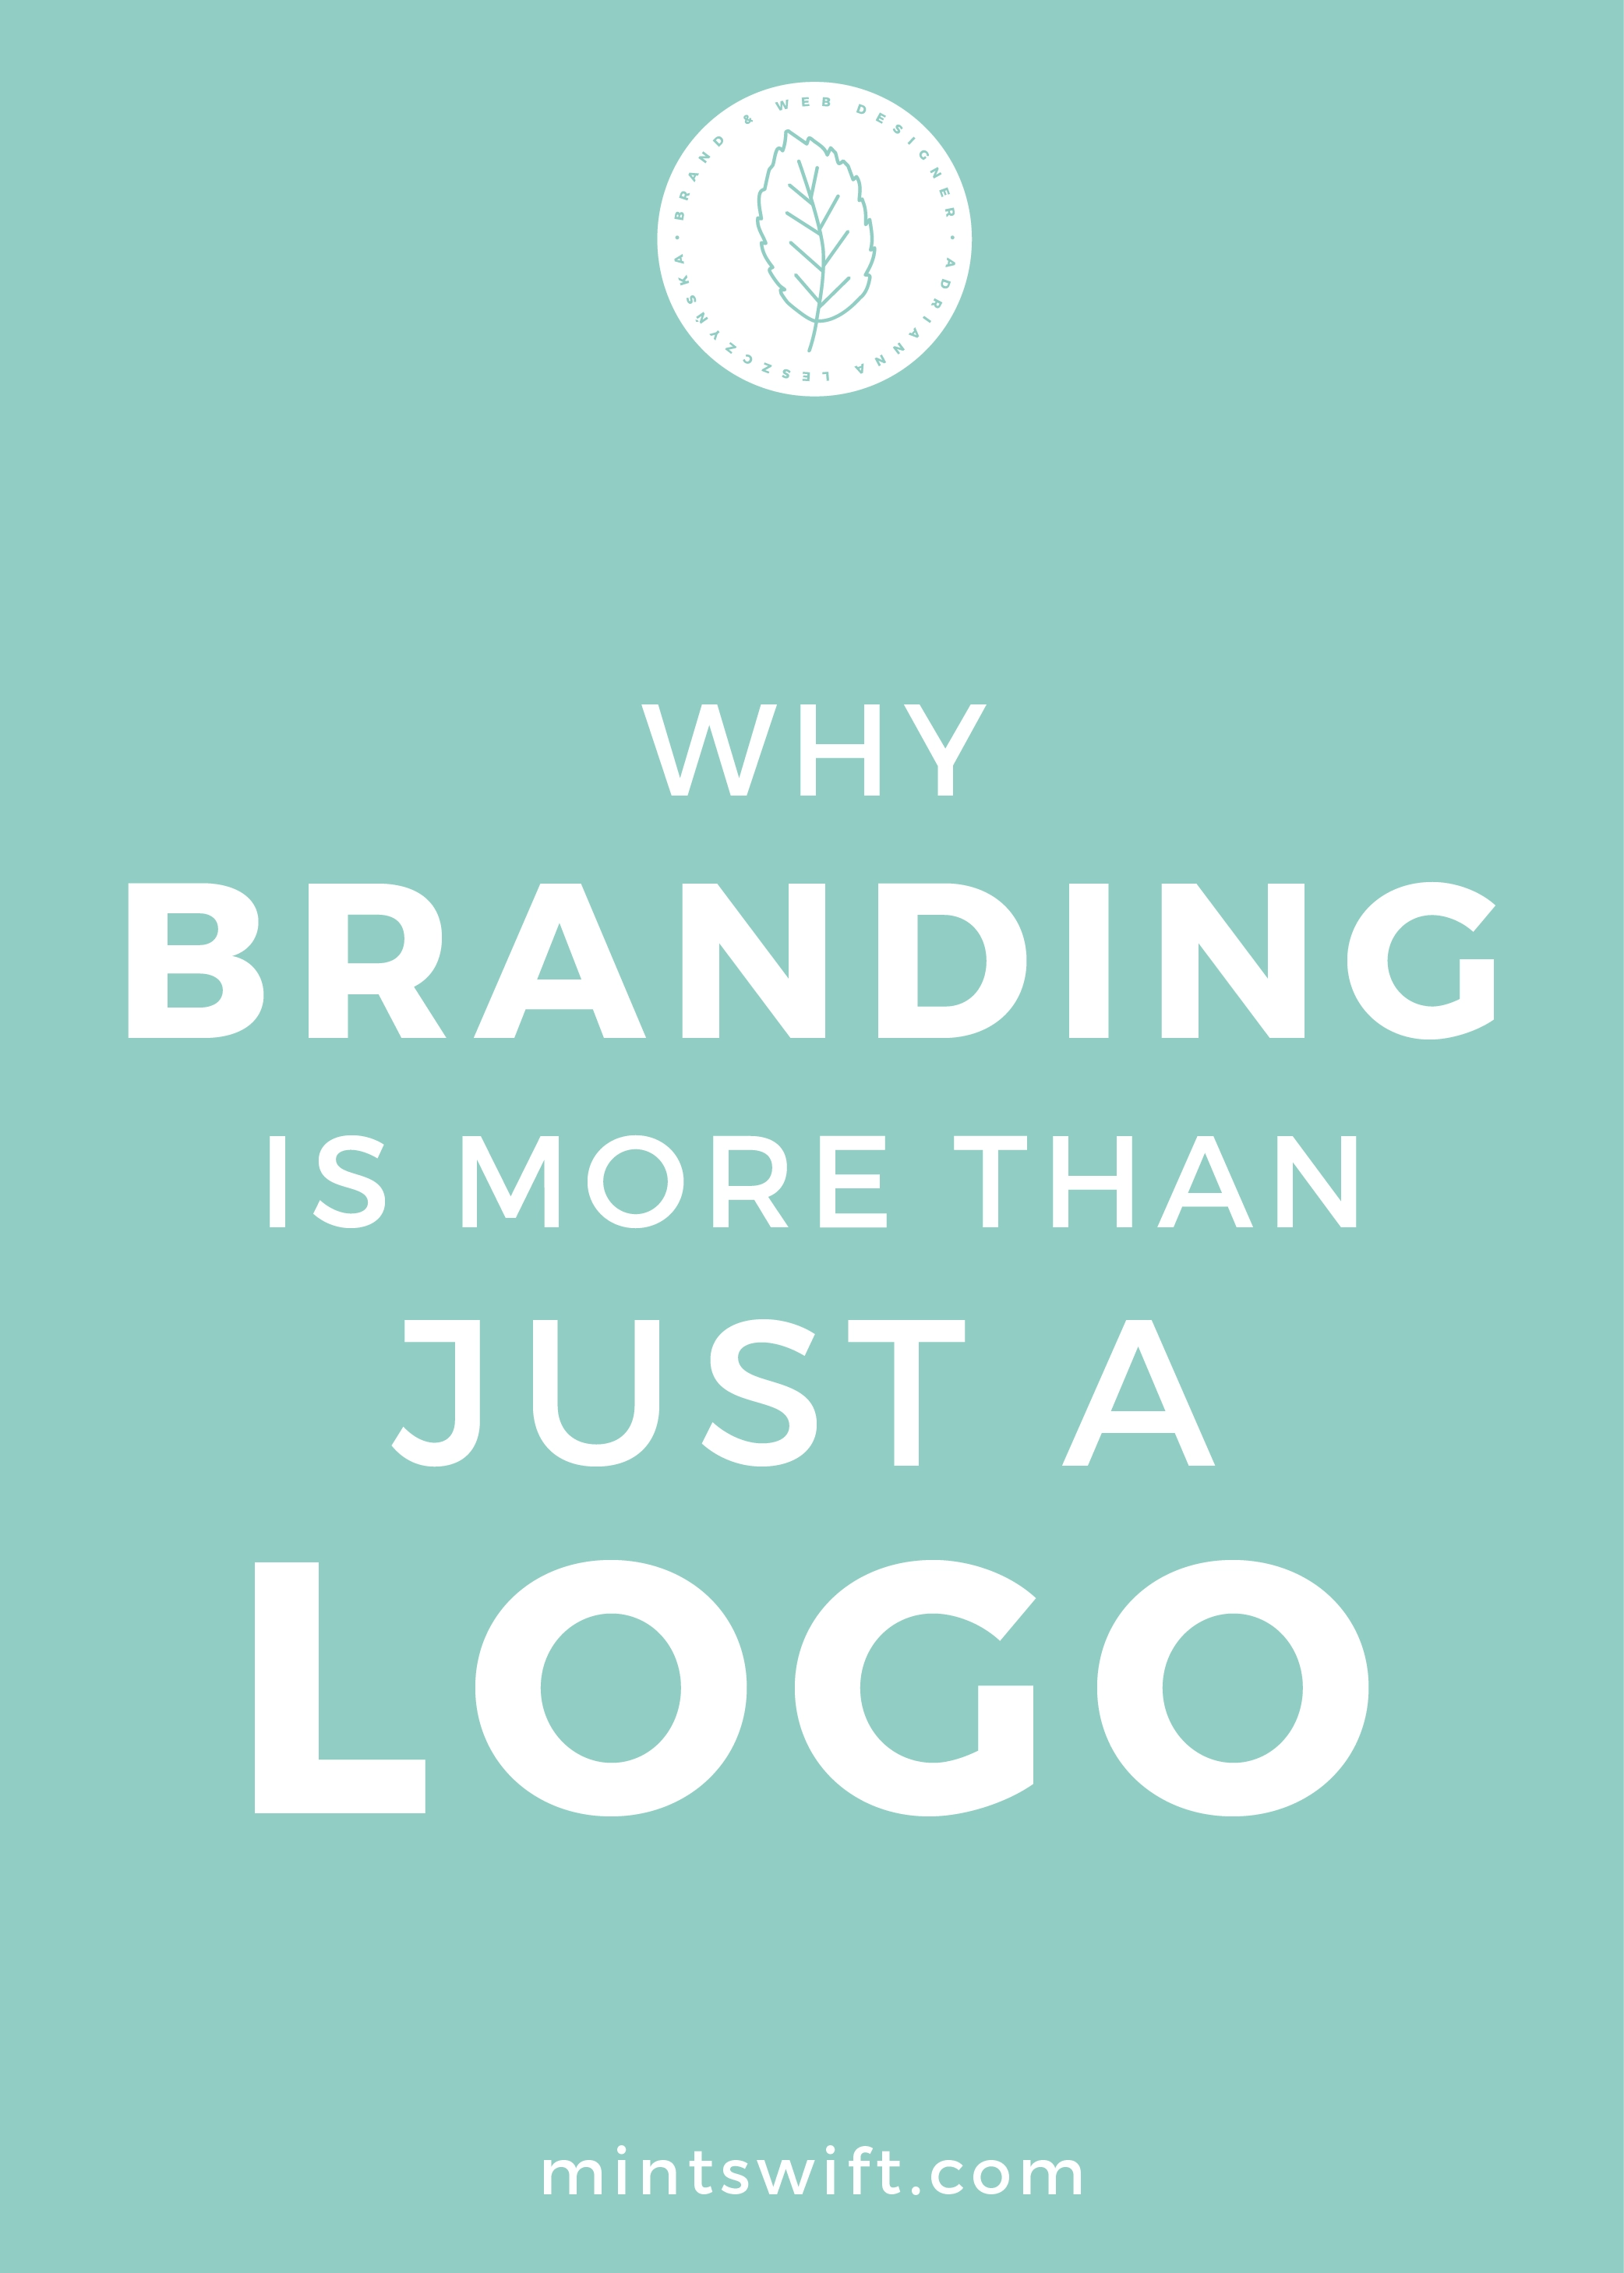 Why Branding is More than Just a Logo